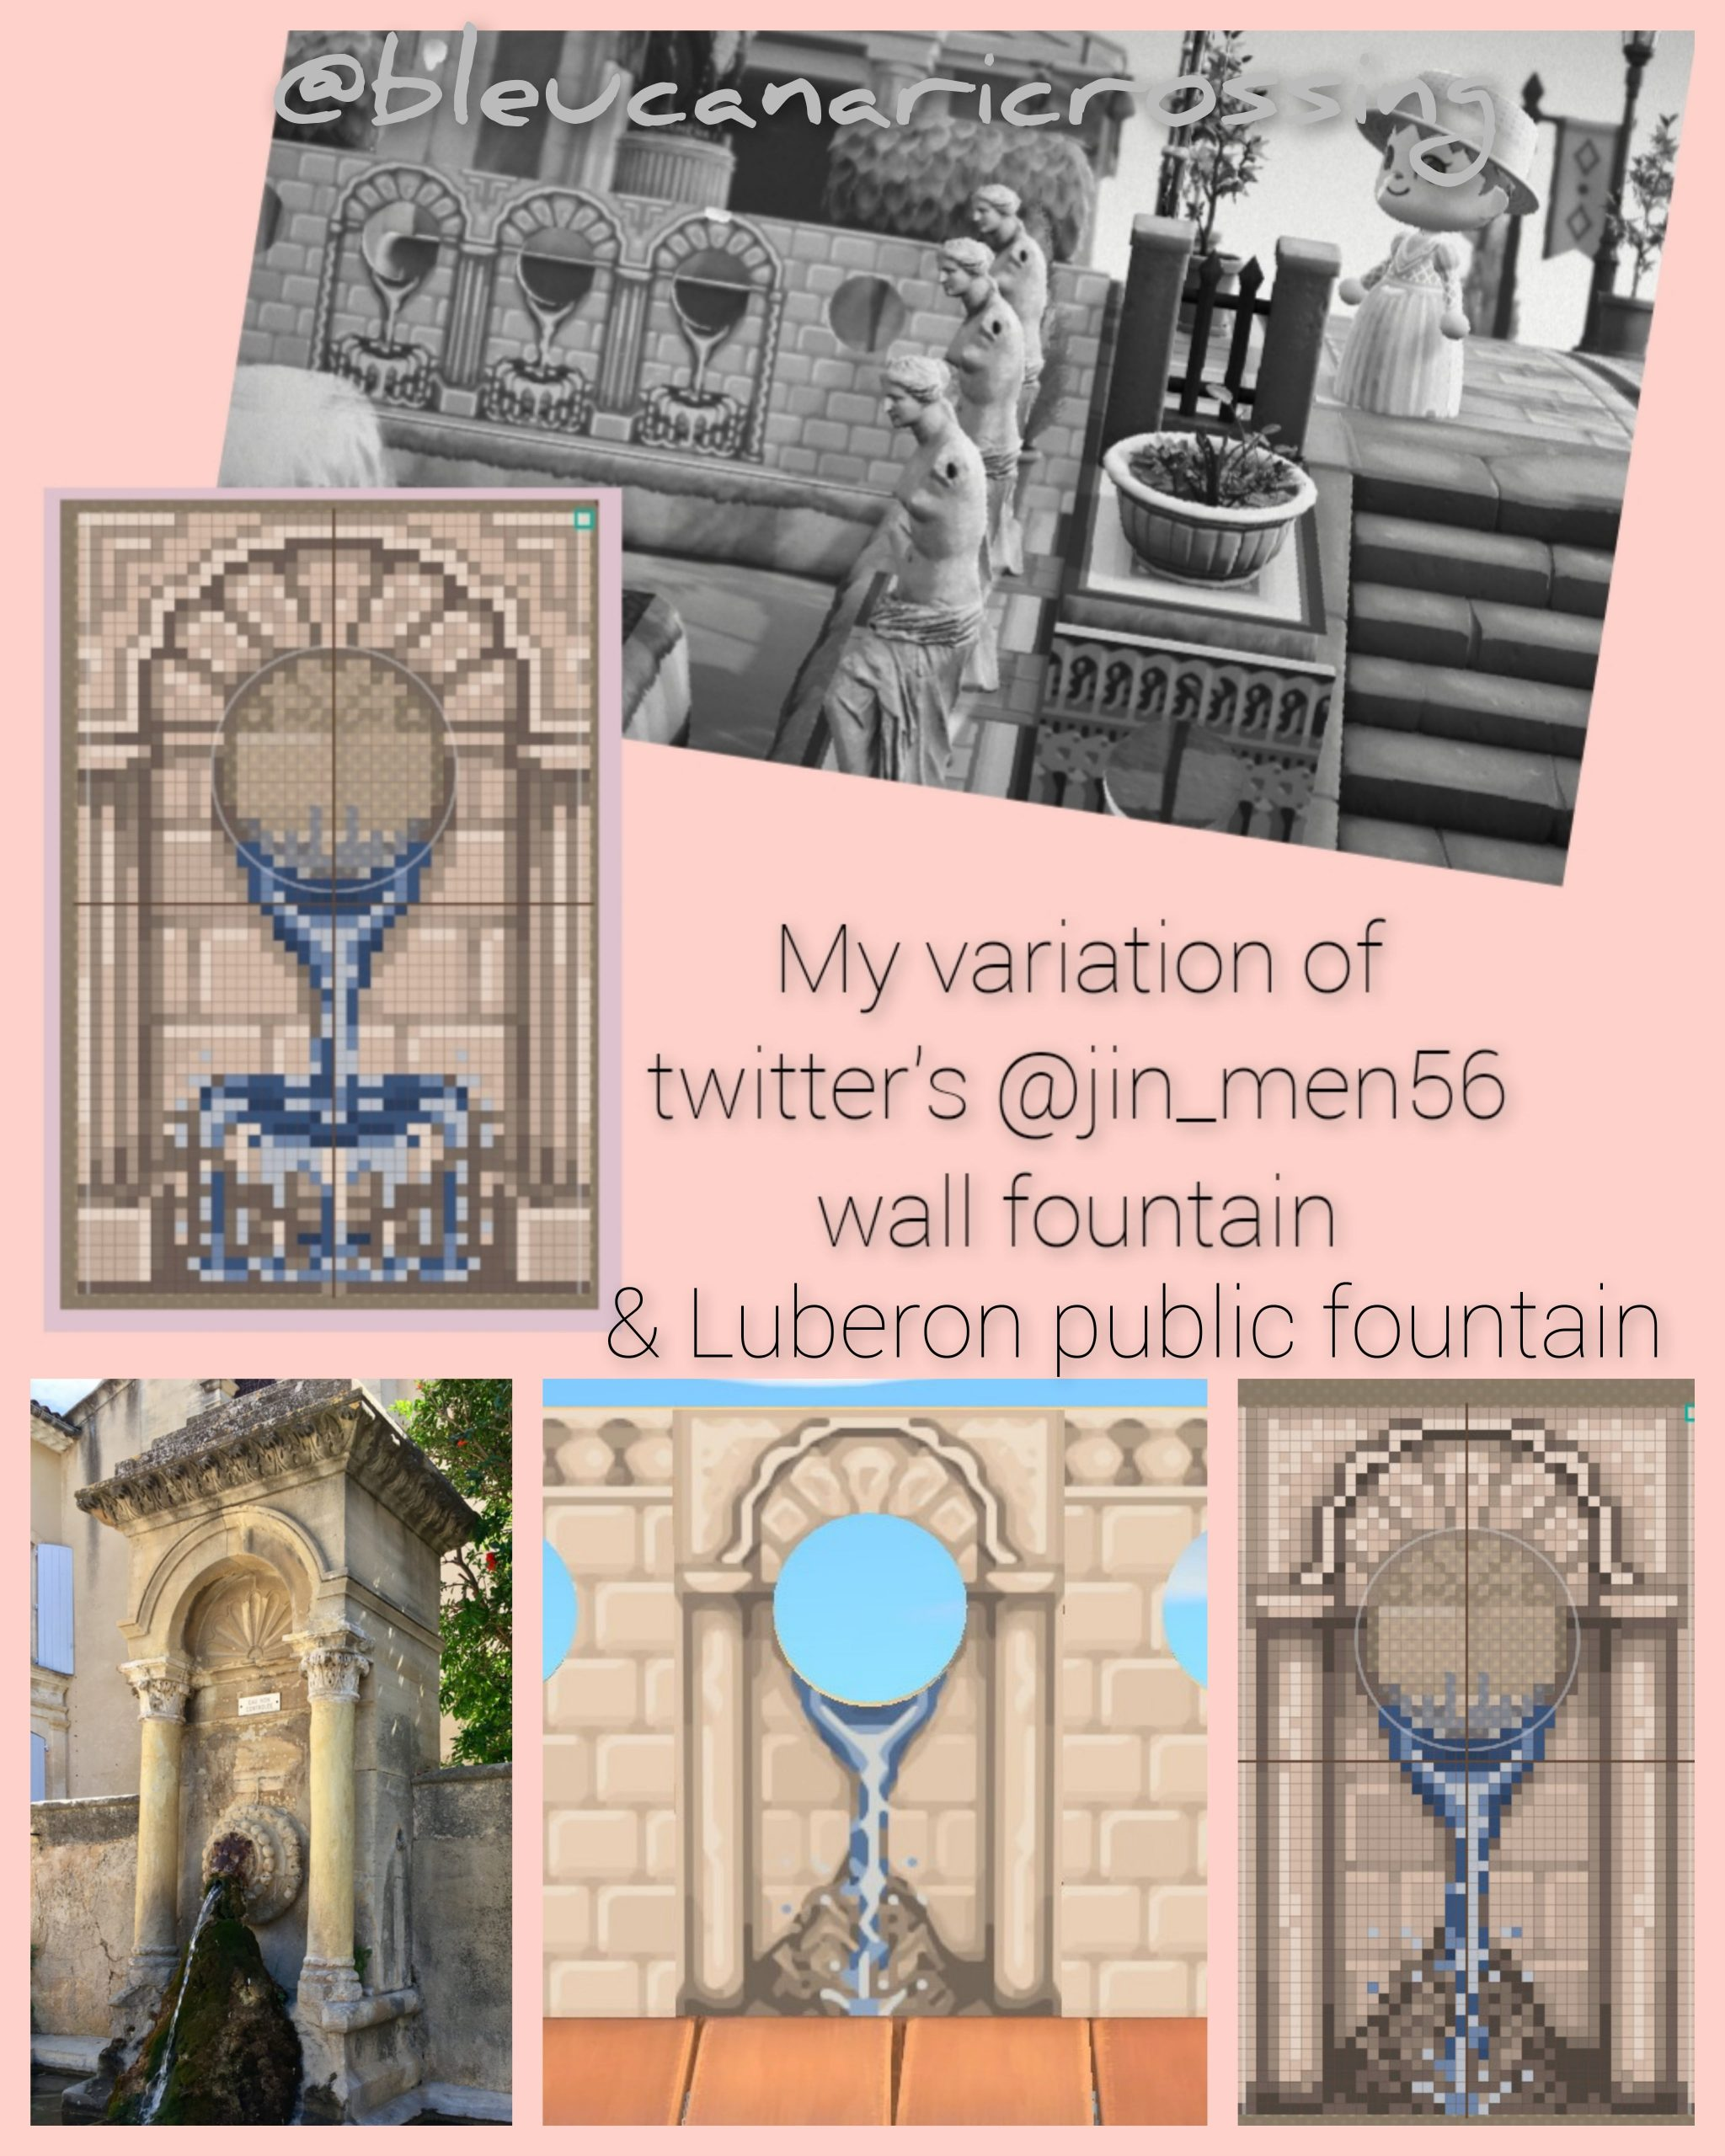 I created a standee fountain based on one from Luberon, and a wall fountain variation of the gorgeous one made by twitter@jin_men56. Ables is full, so here are my pixel designs. Please tag me if you use this (would love to see) and give credit back to the original artist😊